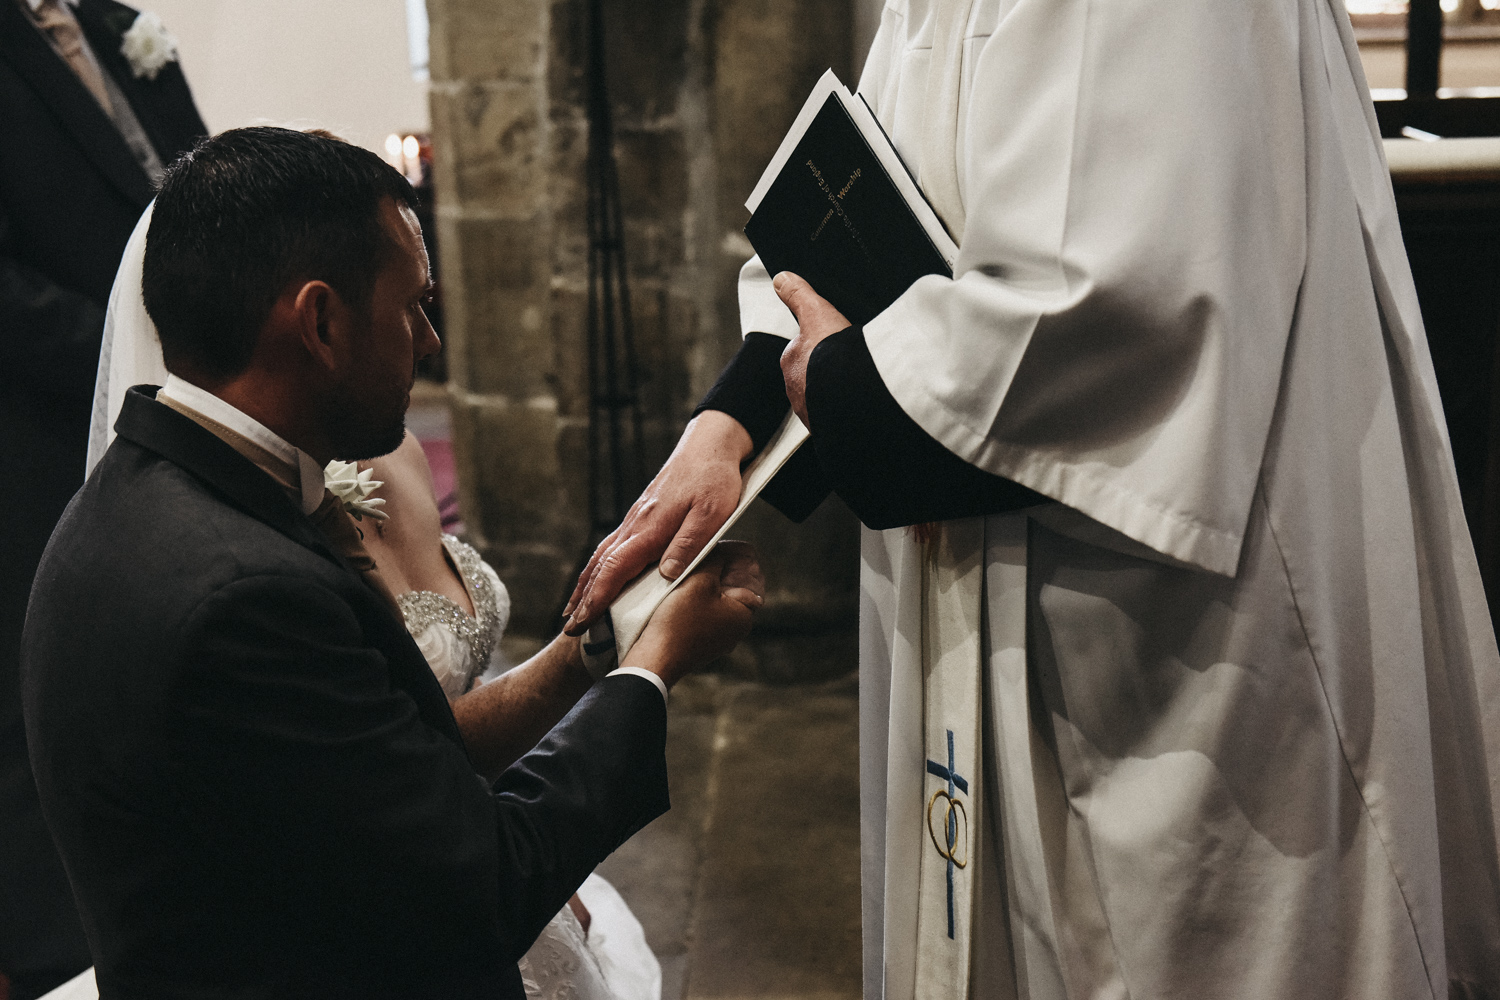 Vicar blessing the married couple